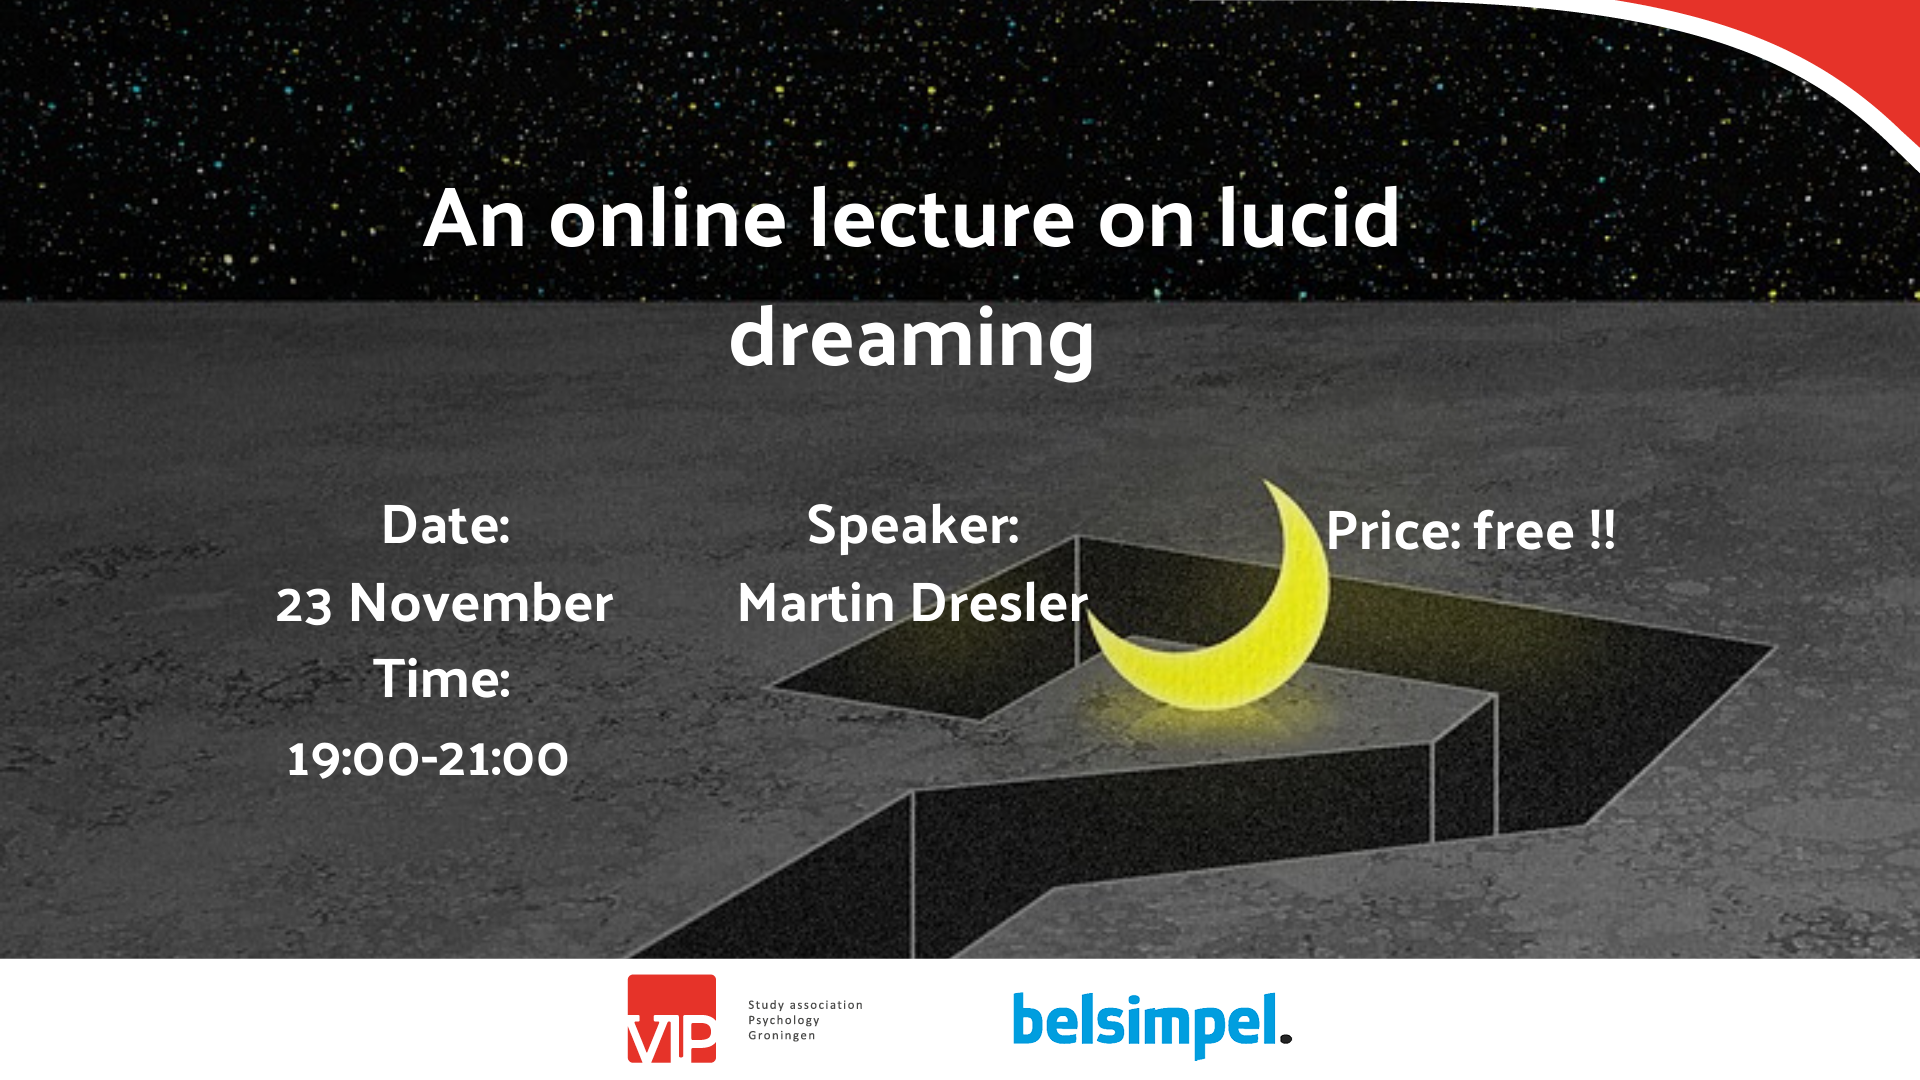 VIP: Lecture Lucid Dreaming